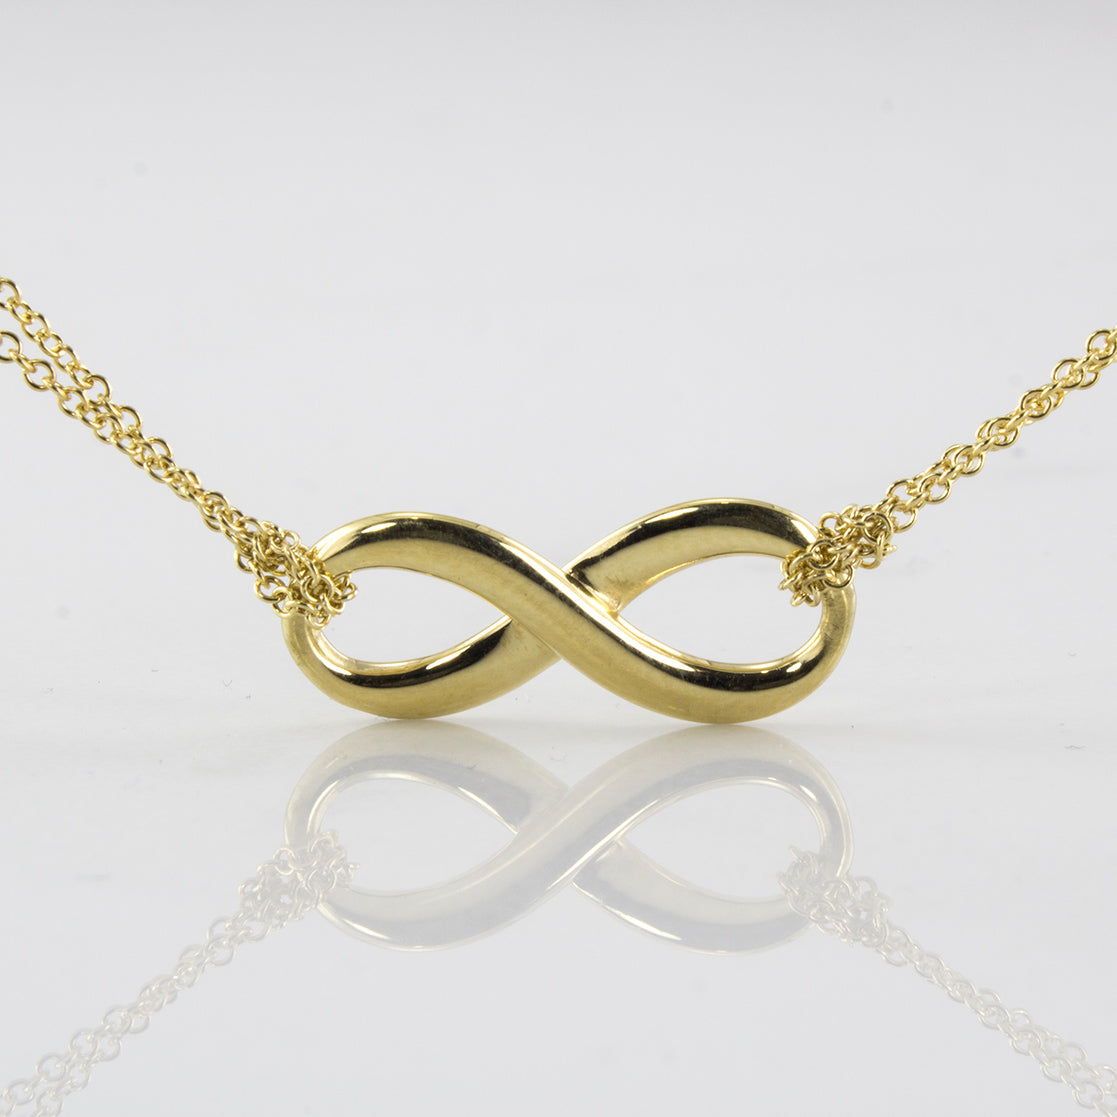 'Tiffany & Co.' Infinity Necklace | SZ 16"